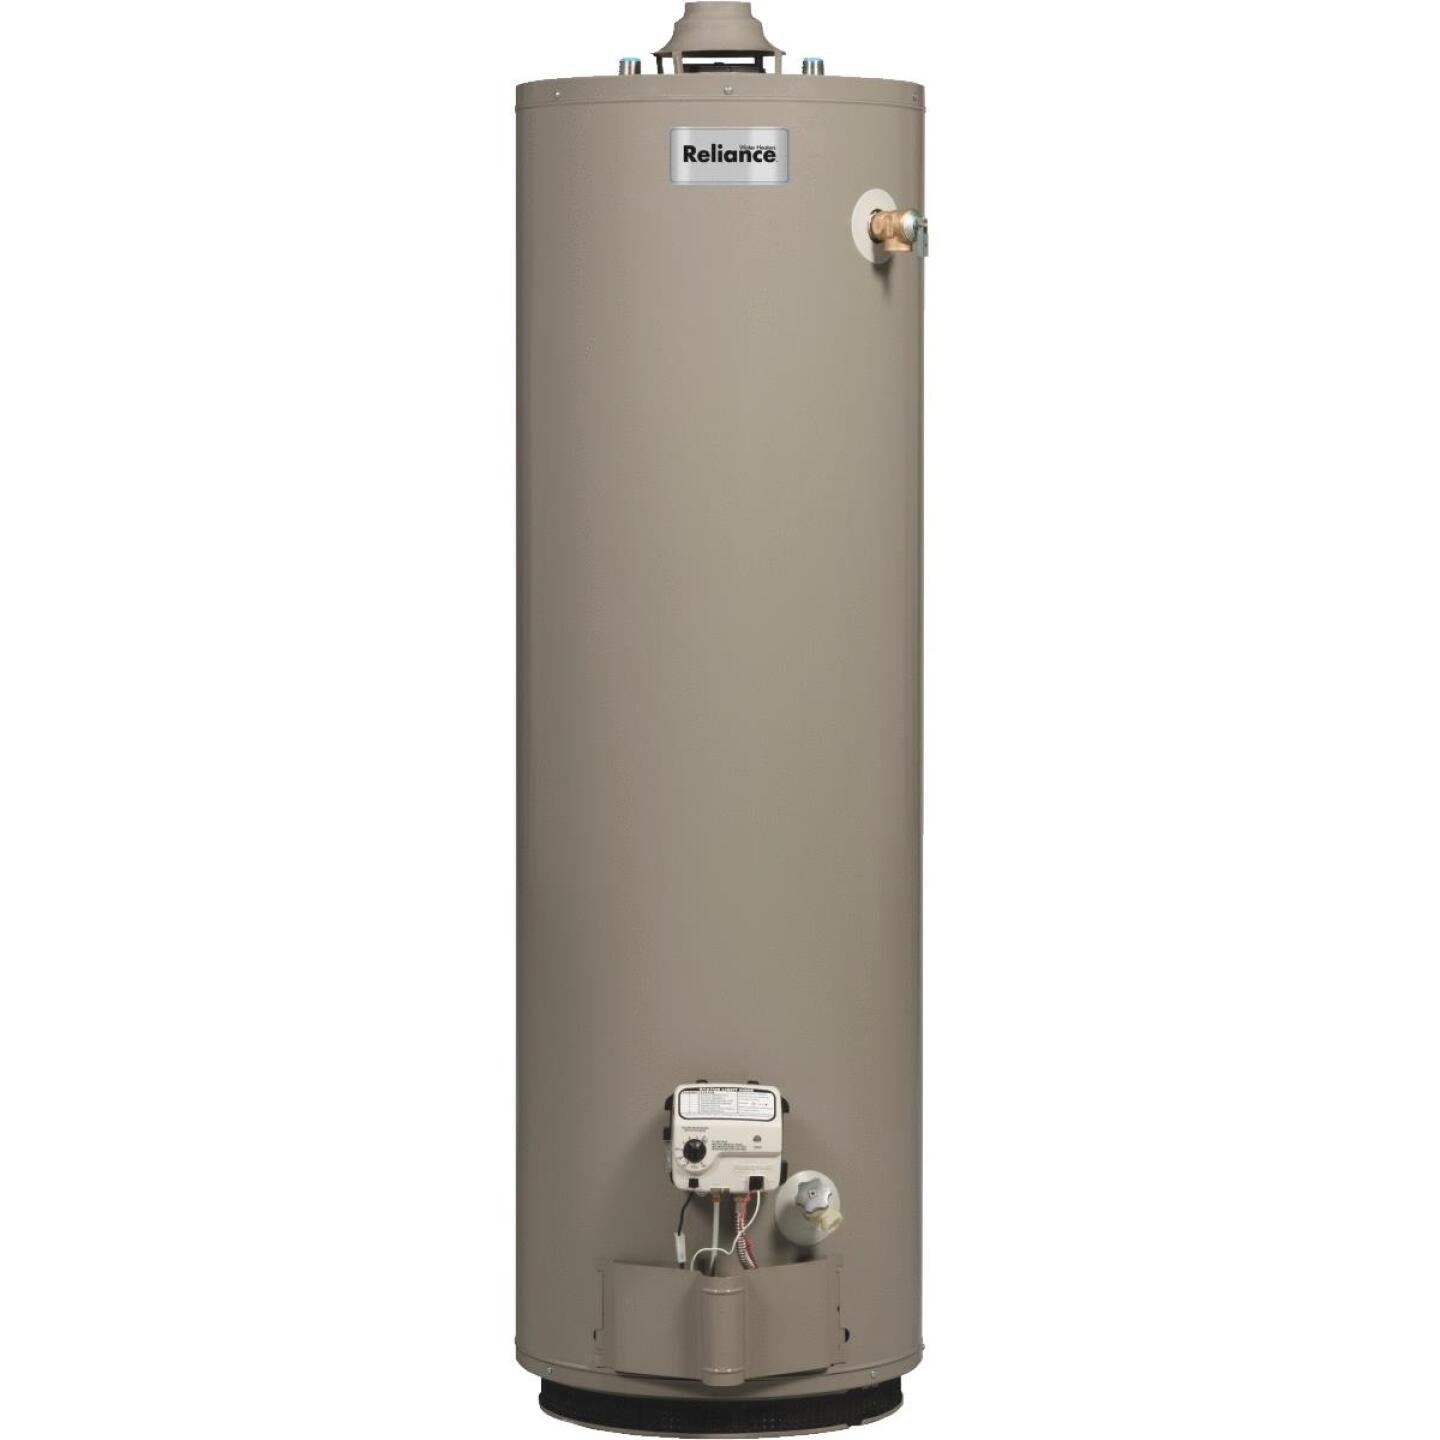 Reliance 40 Gal. Short 6yr 40,000 BTU Natural Gas Water Heater Image 1